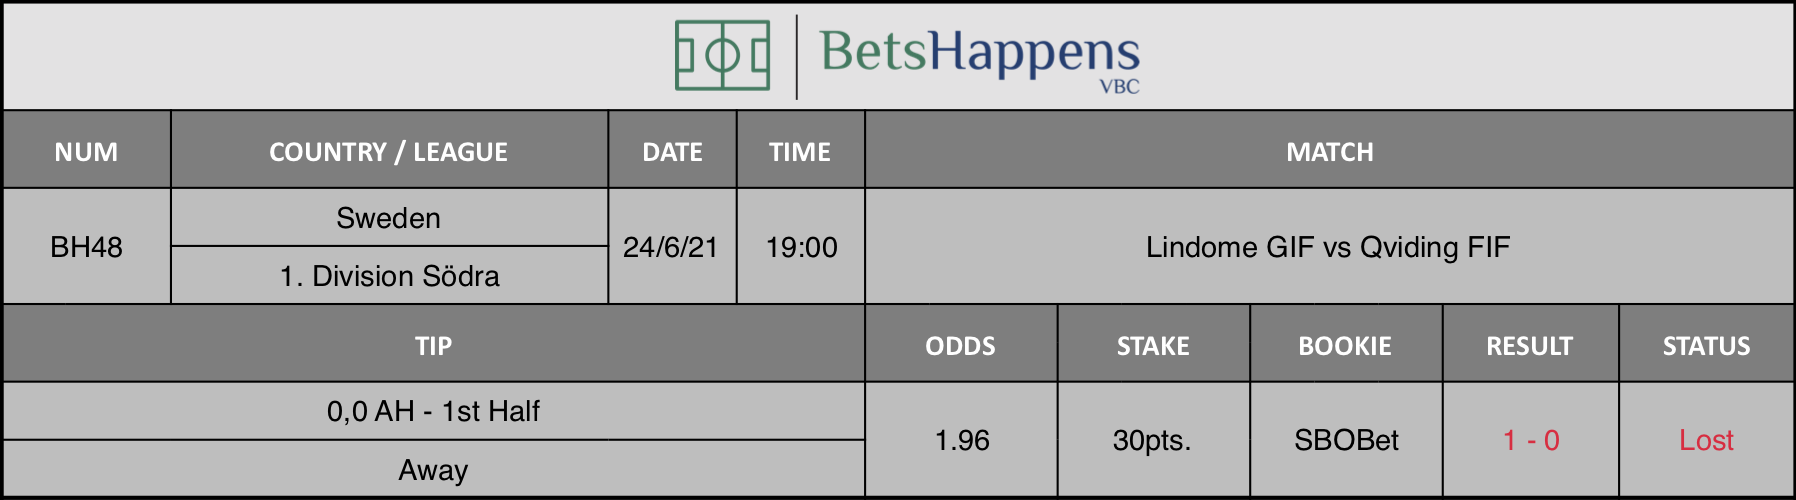 Results of our tip for the Lindome GIF vs Qviding FIF match 0,0 AH - 1st Half Away is recommended.